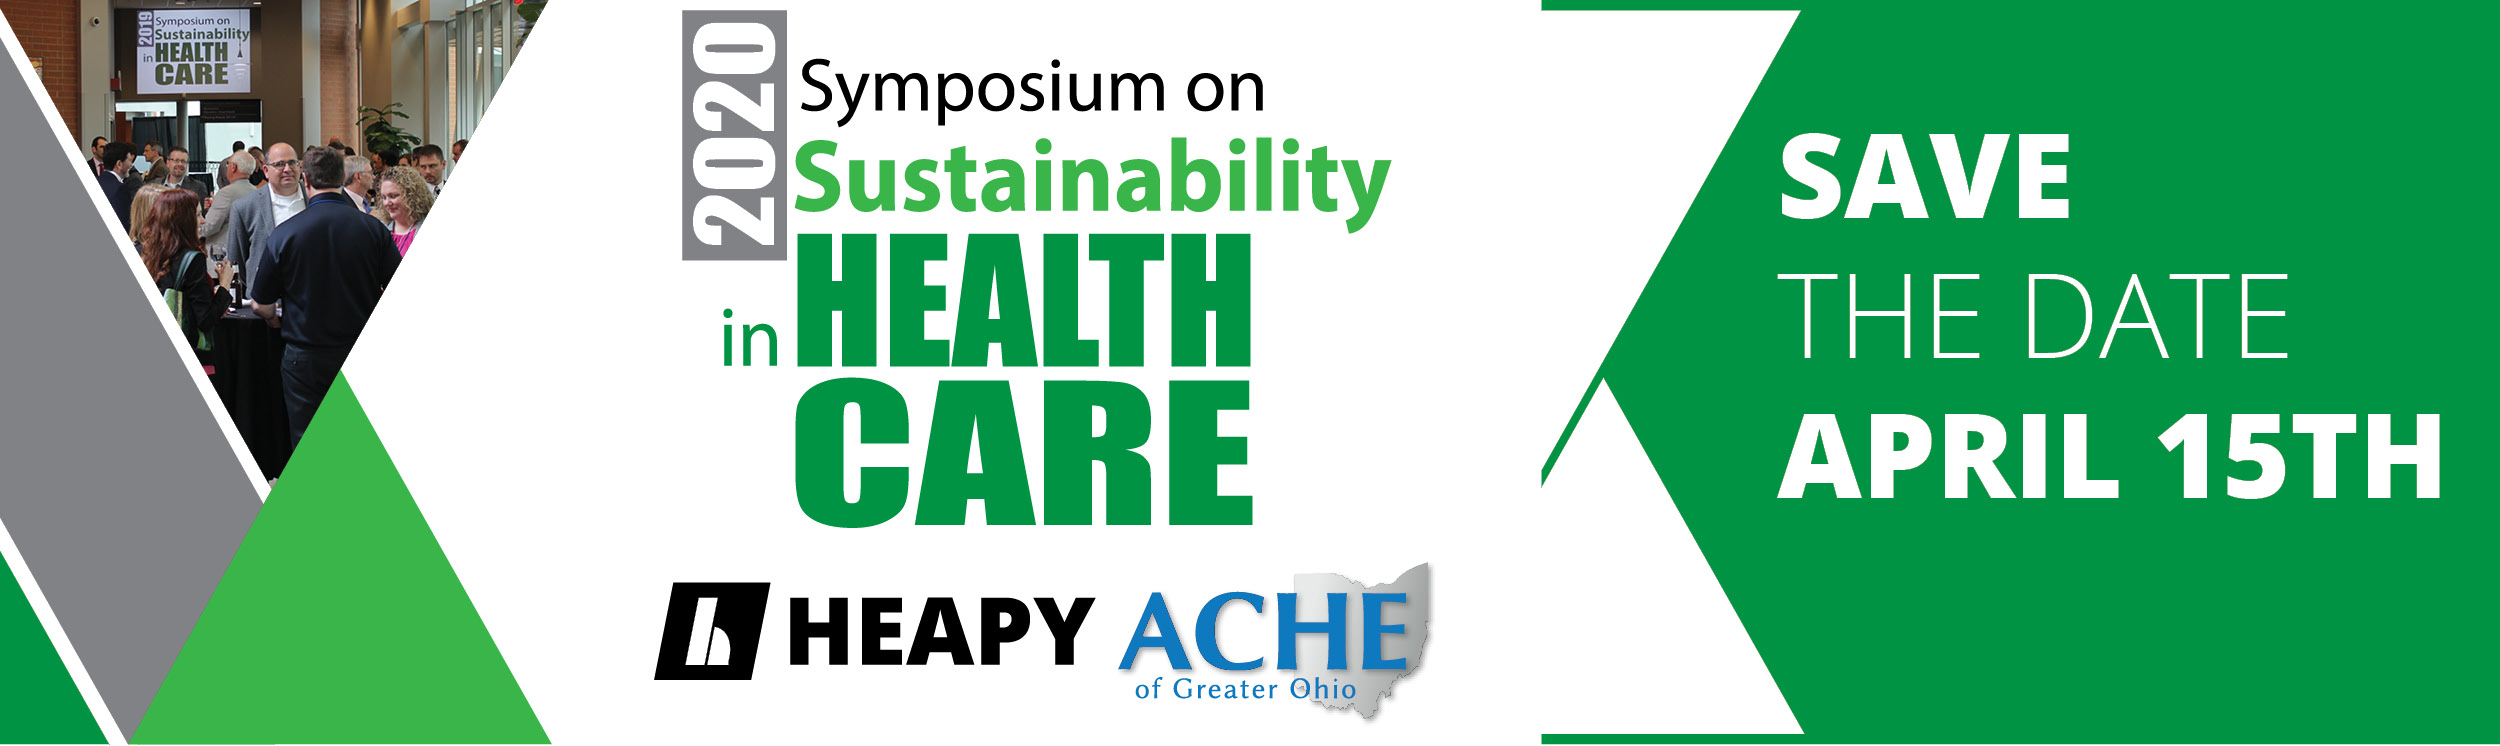 Symposium on Sustainability in Health Care